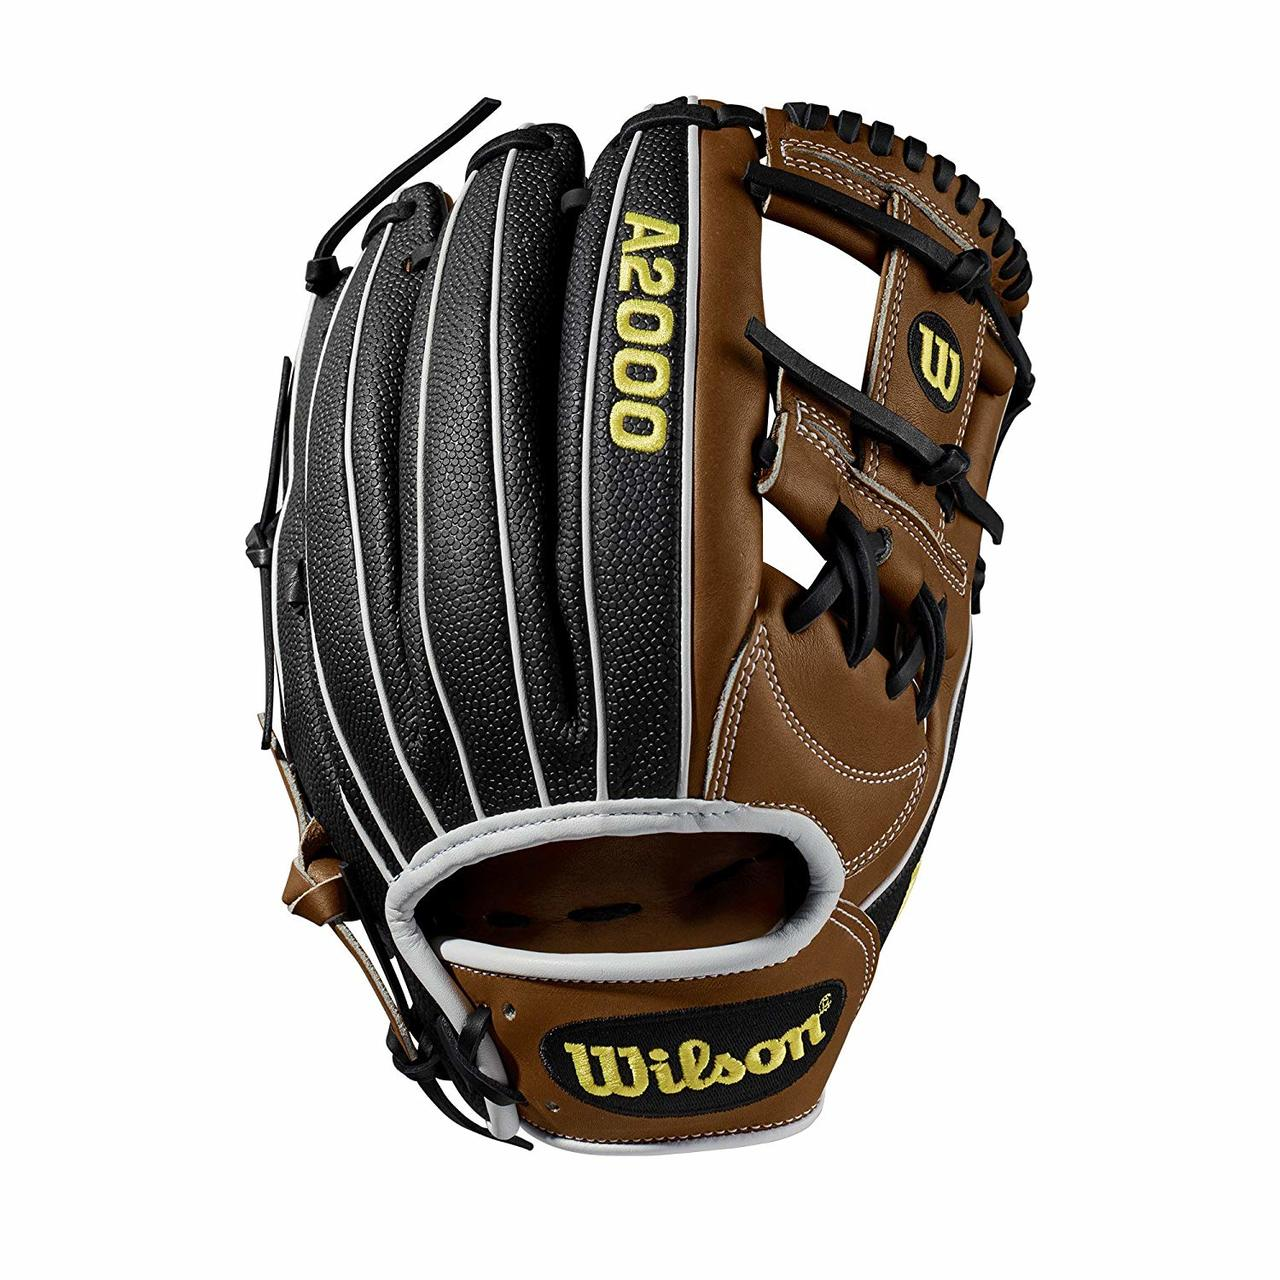 wilson-a2000-1787ss-11-75-baseball-glove-2019-right-hand-throw WTA20RB191787SS-RightHandThrow Wilson 887768701949 nfield model; H-Web Double lacing at the base of the web